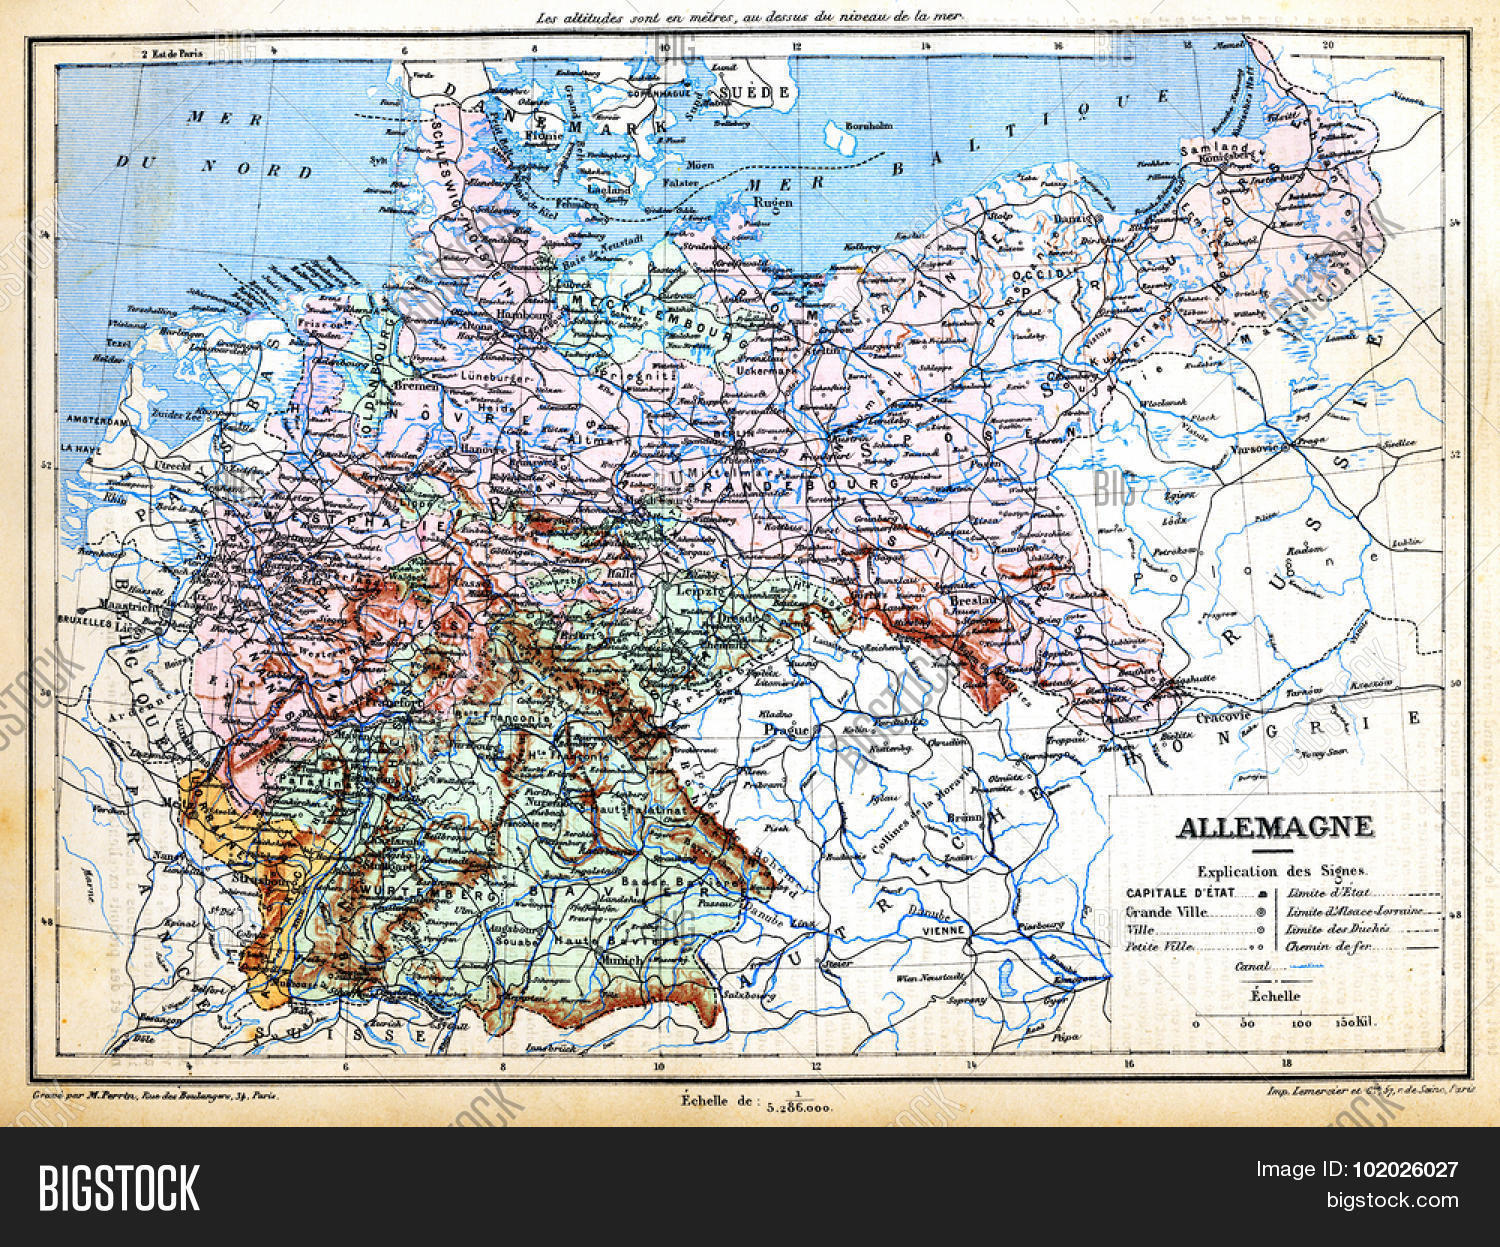 Map Of Germany Late 1800s.Map Germany Signs Image Photo Free Trial Bigstock